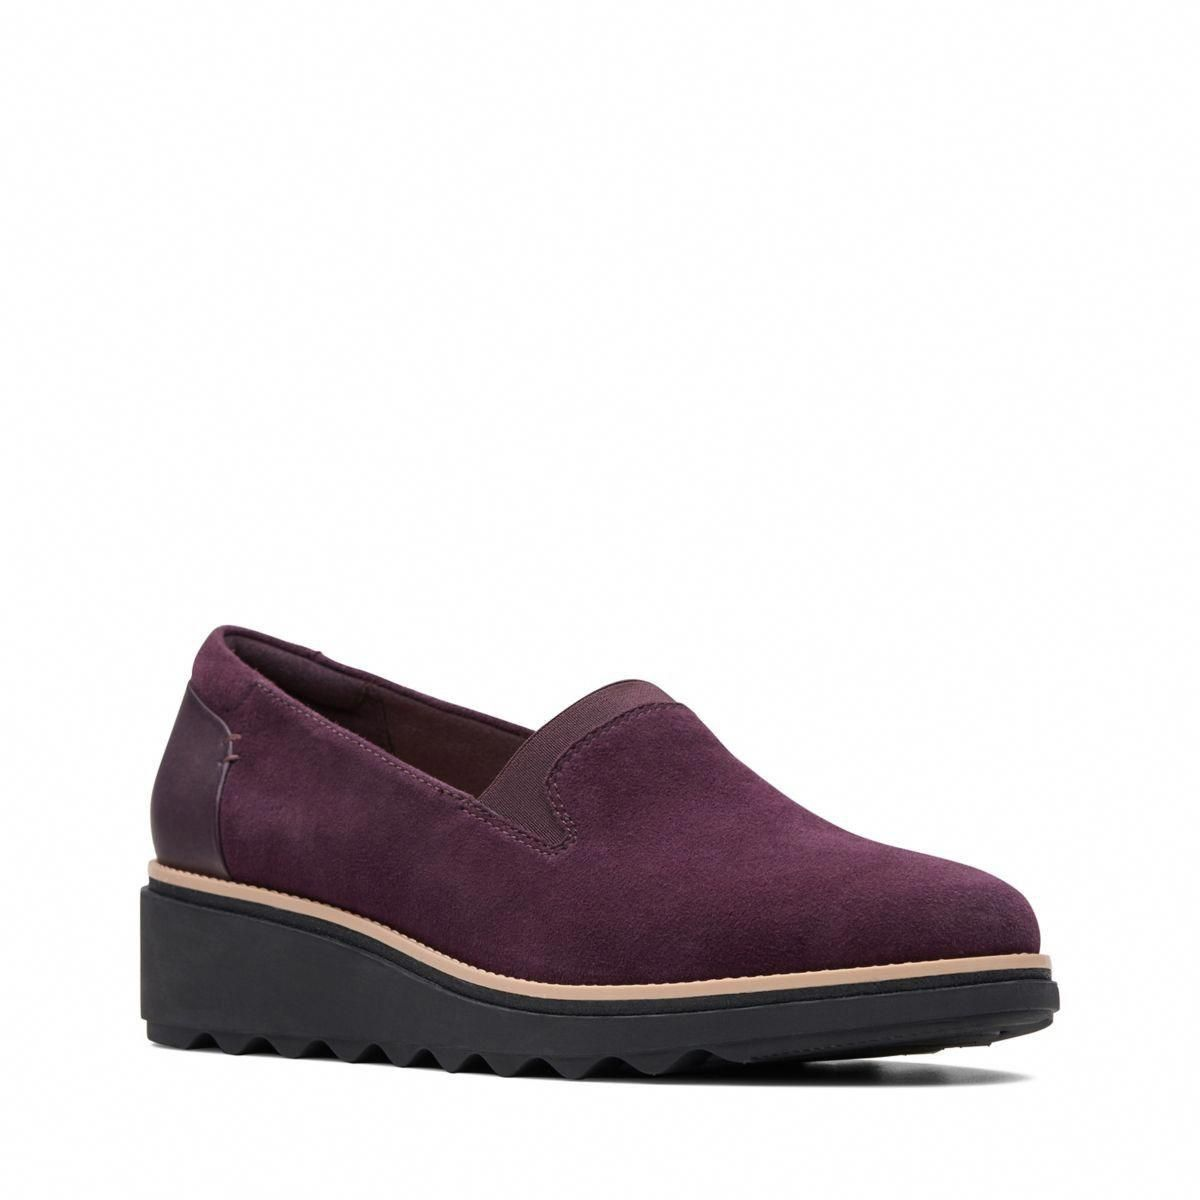 85304e575 Clarks Sharon Dolly - Womens Shoes Aubergine Suede 7.5 E (Wide) Out Of Stock